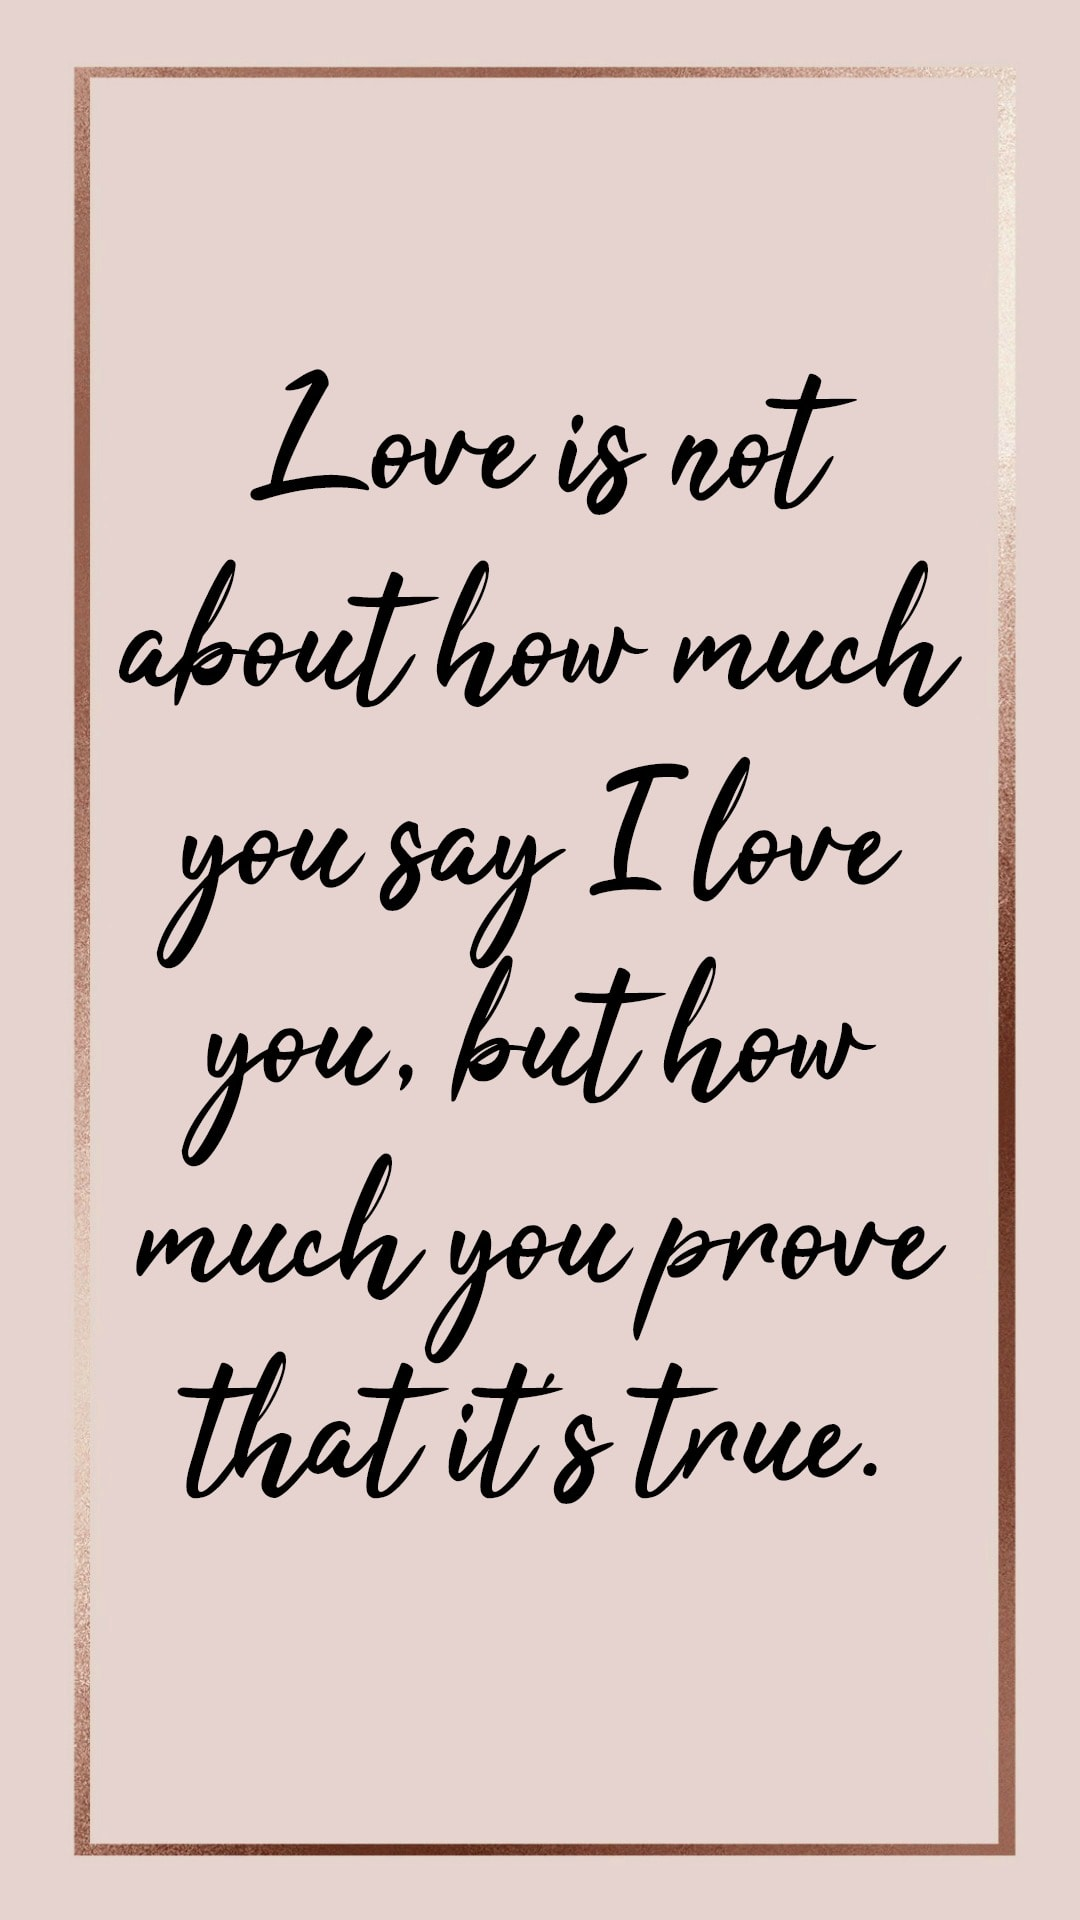 Love is not about how much you say I love you, but how much you prove that it's true.